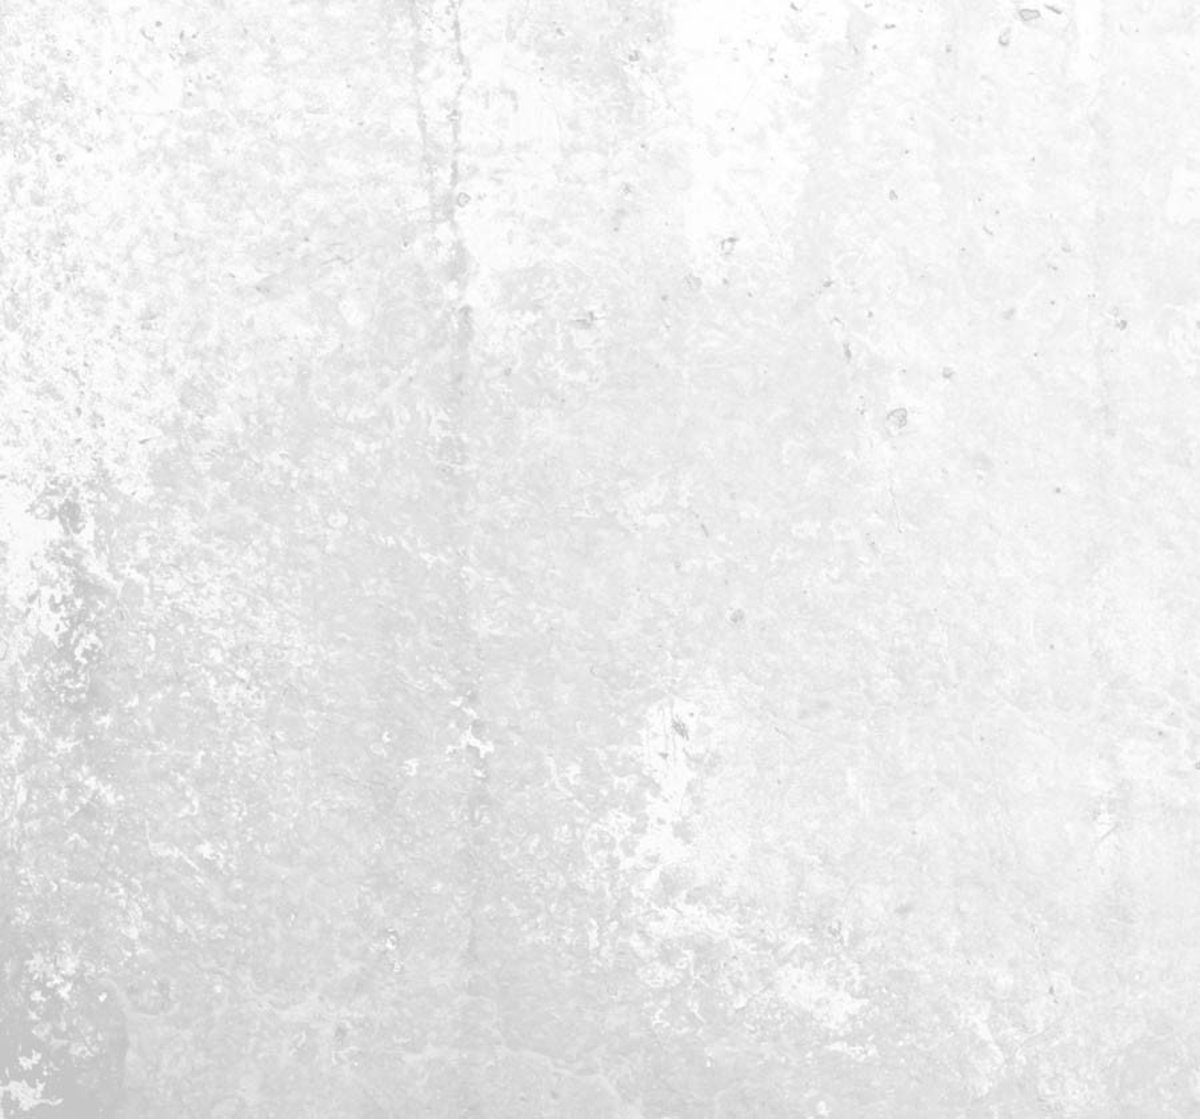 Distressed white cement or concrete wall texture background Additional Thumbnail